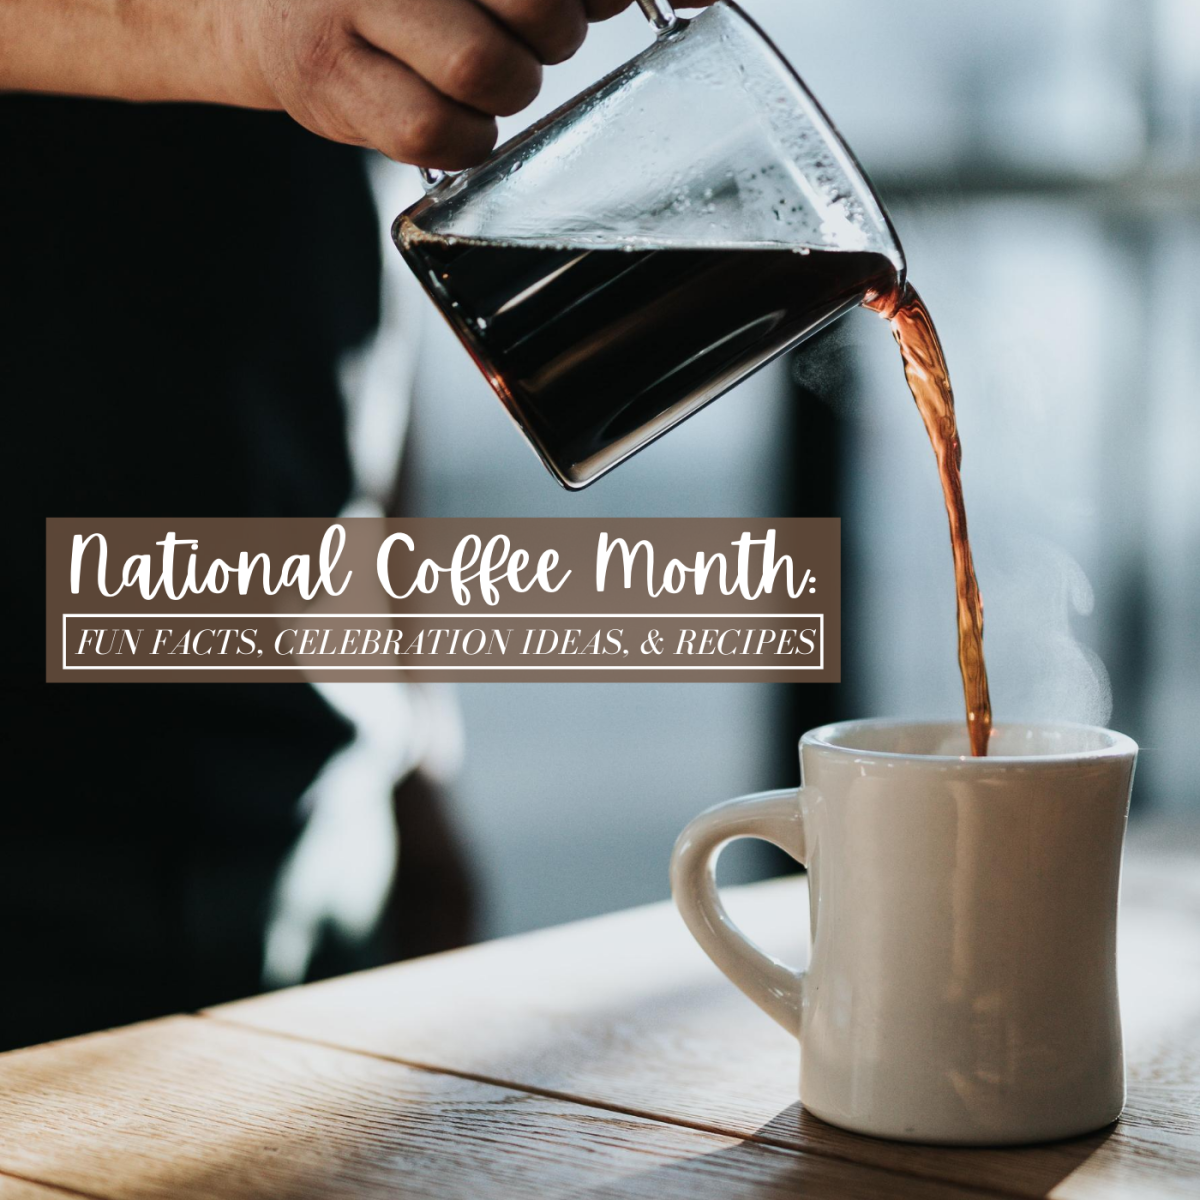 August is National Coffee Month. How will you celebrate?